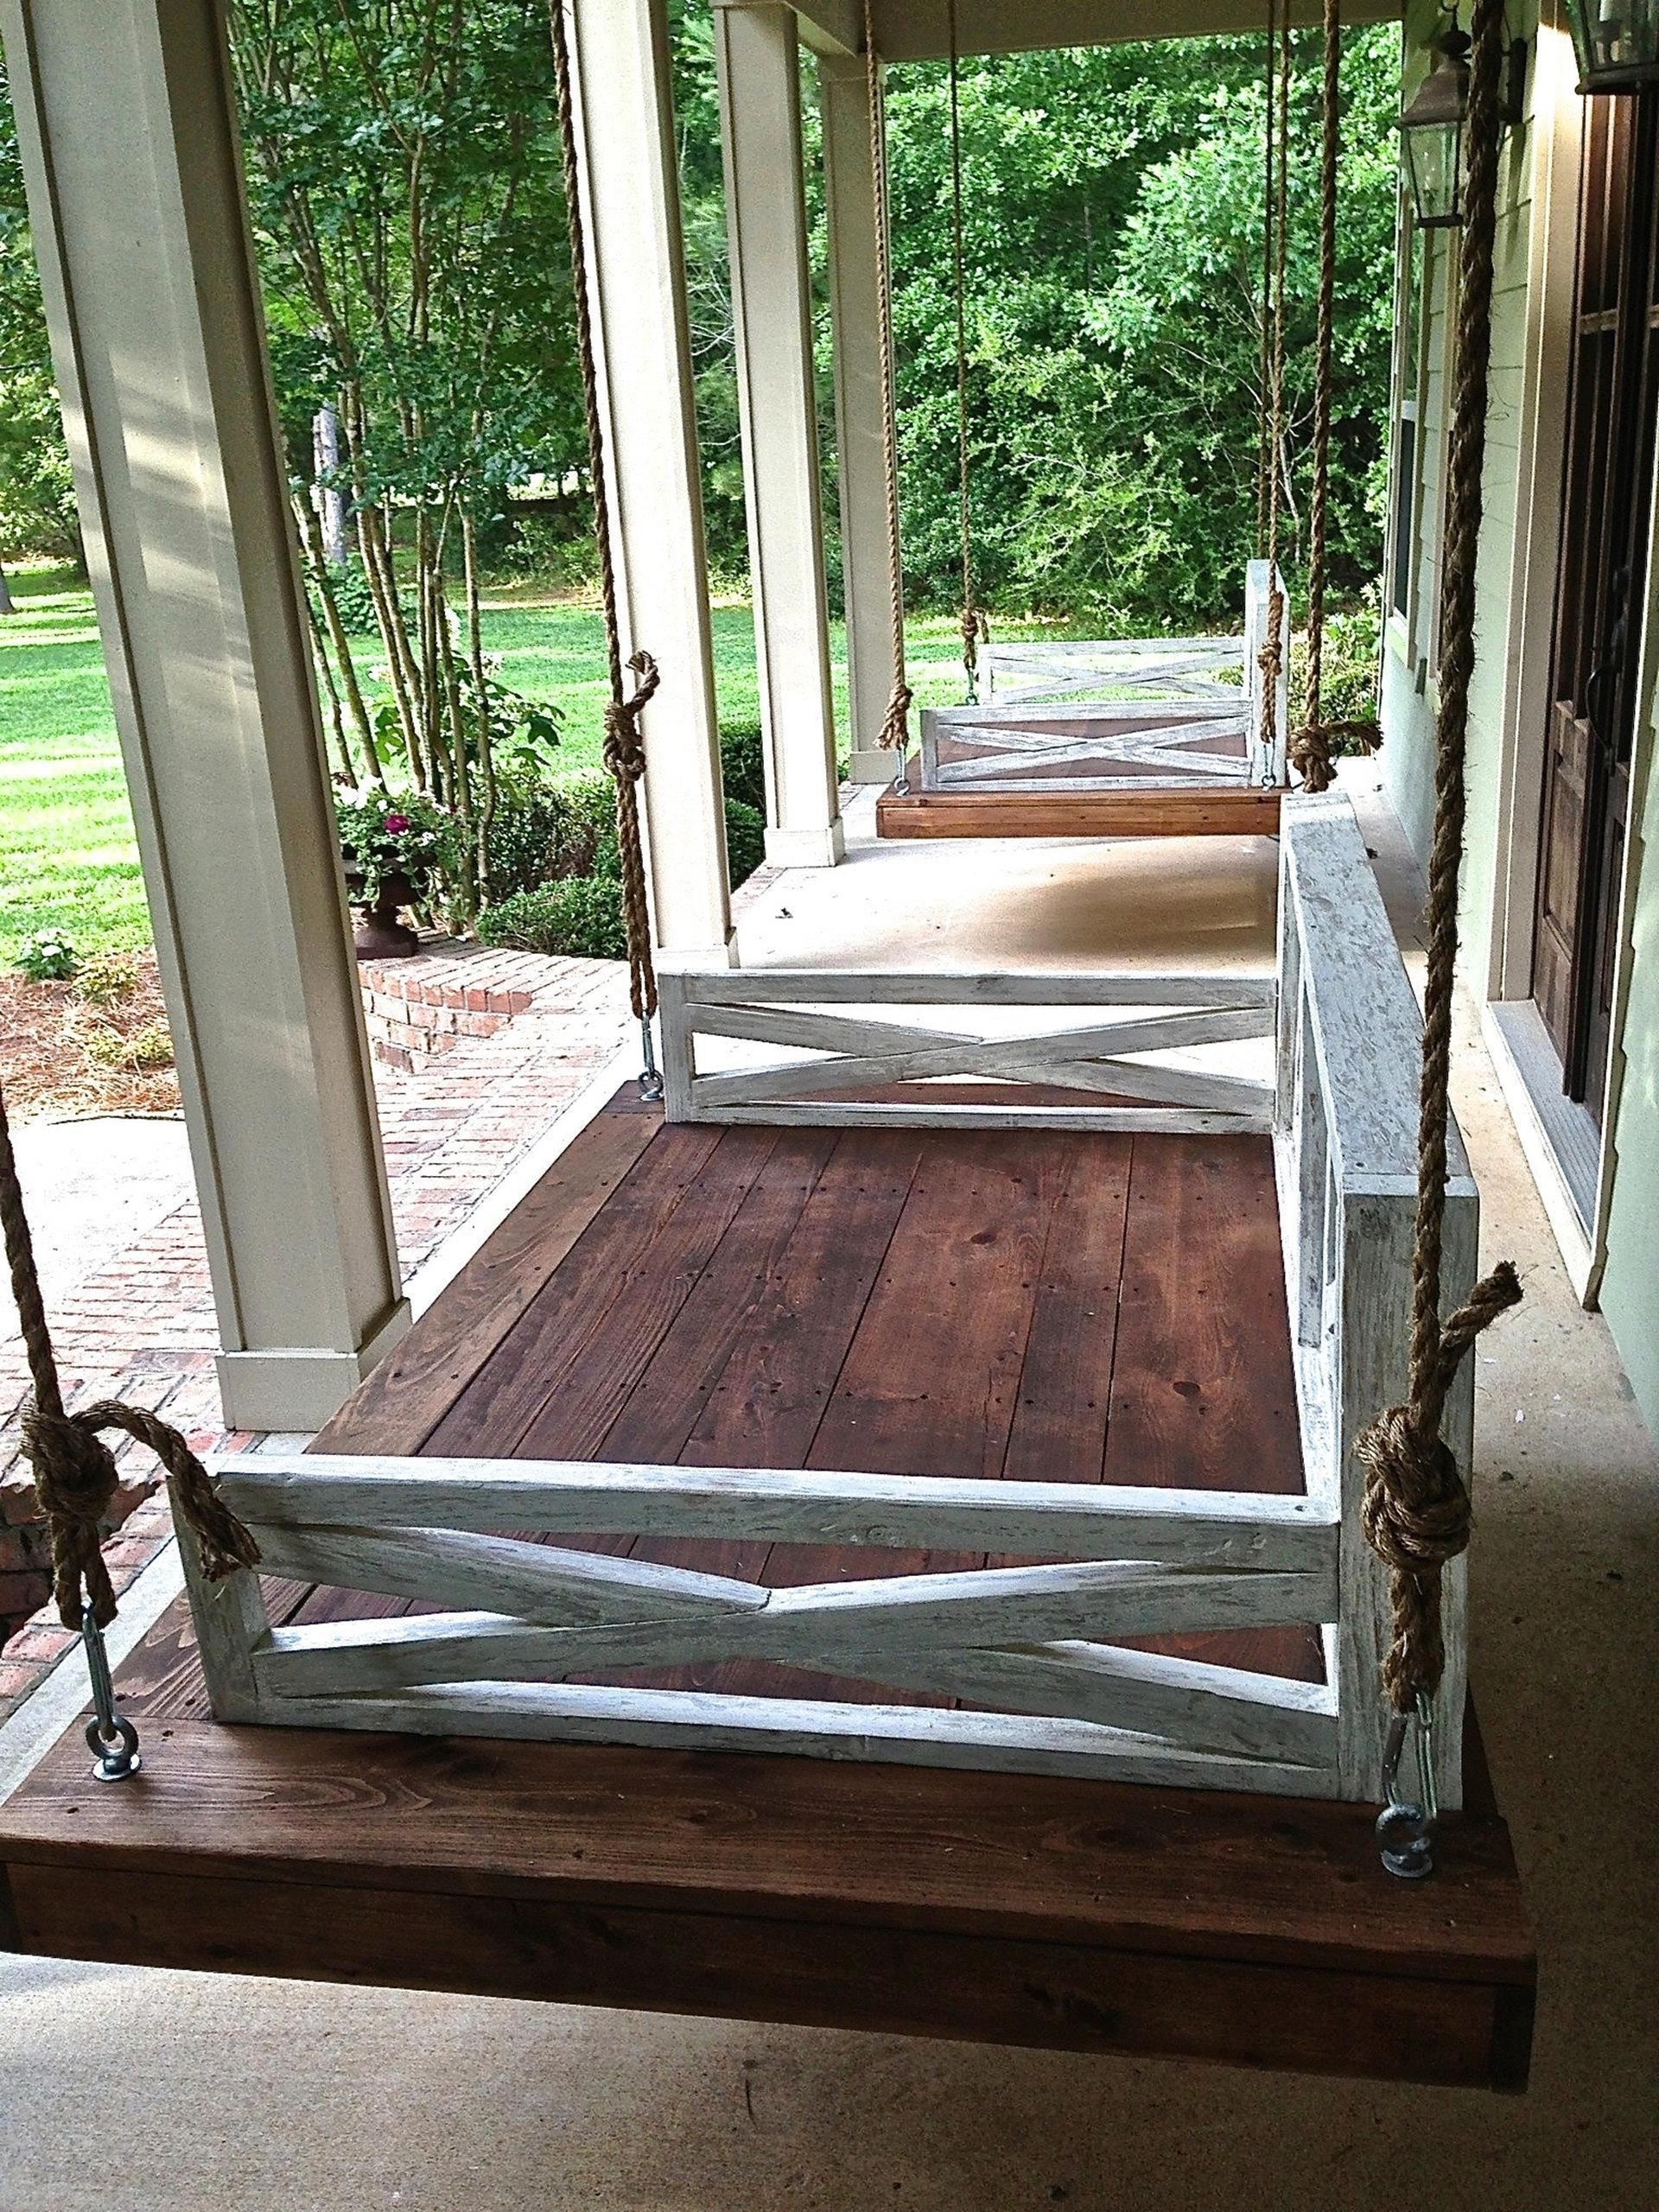 Diy Porch Swing Bed Plans Ideas On A Budget 46 Decorecent Bed Budget Decorecent Diy Ideas Plans In 2020 Diy Porch Swing Outdoor Porch Bed Front Porch Furniture